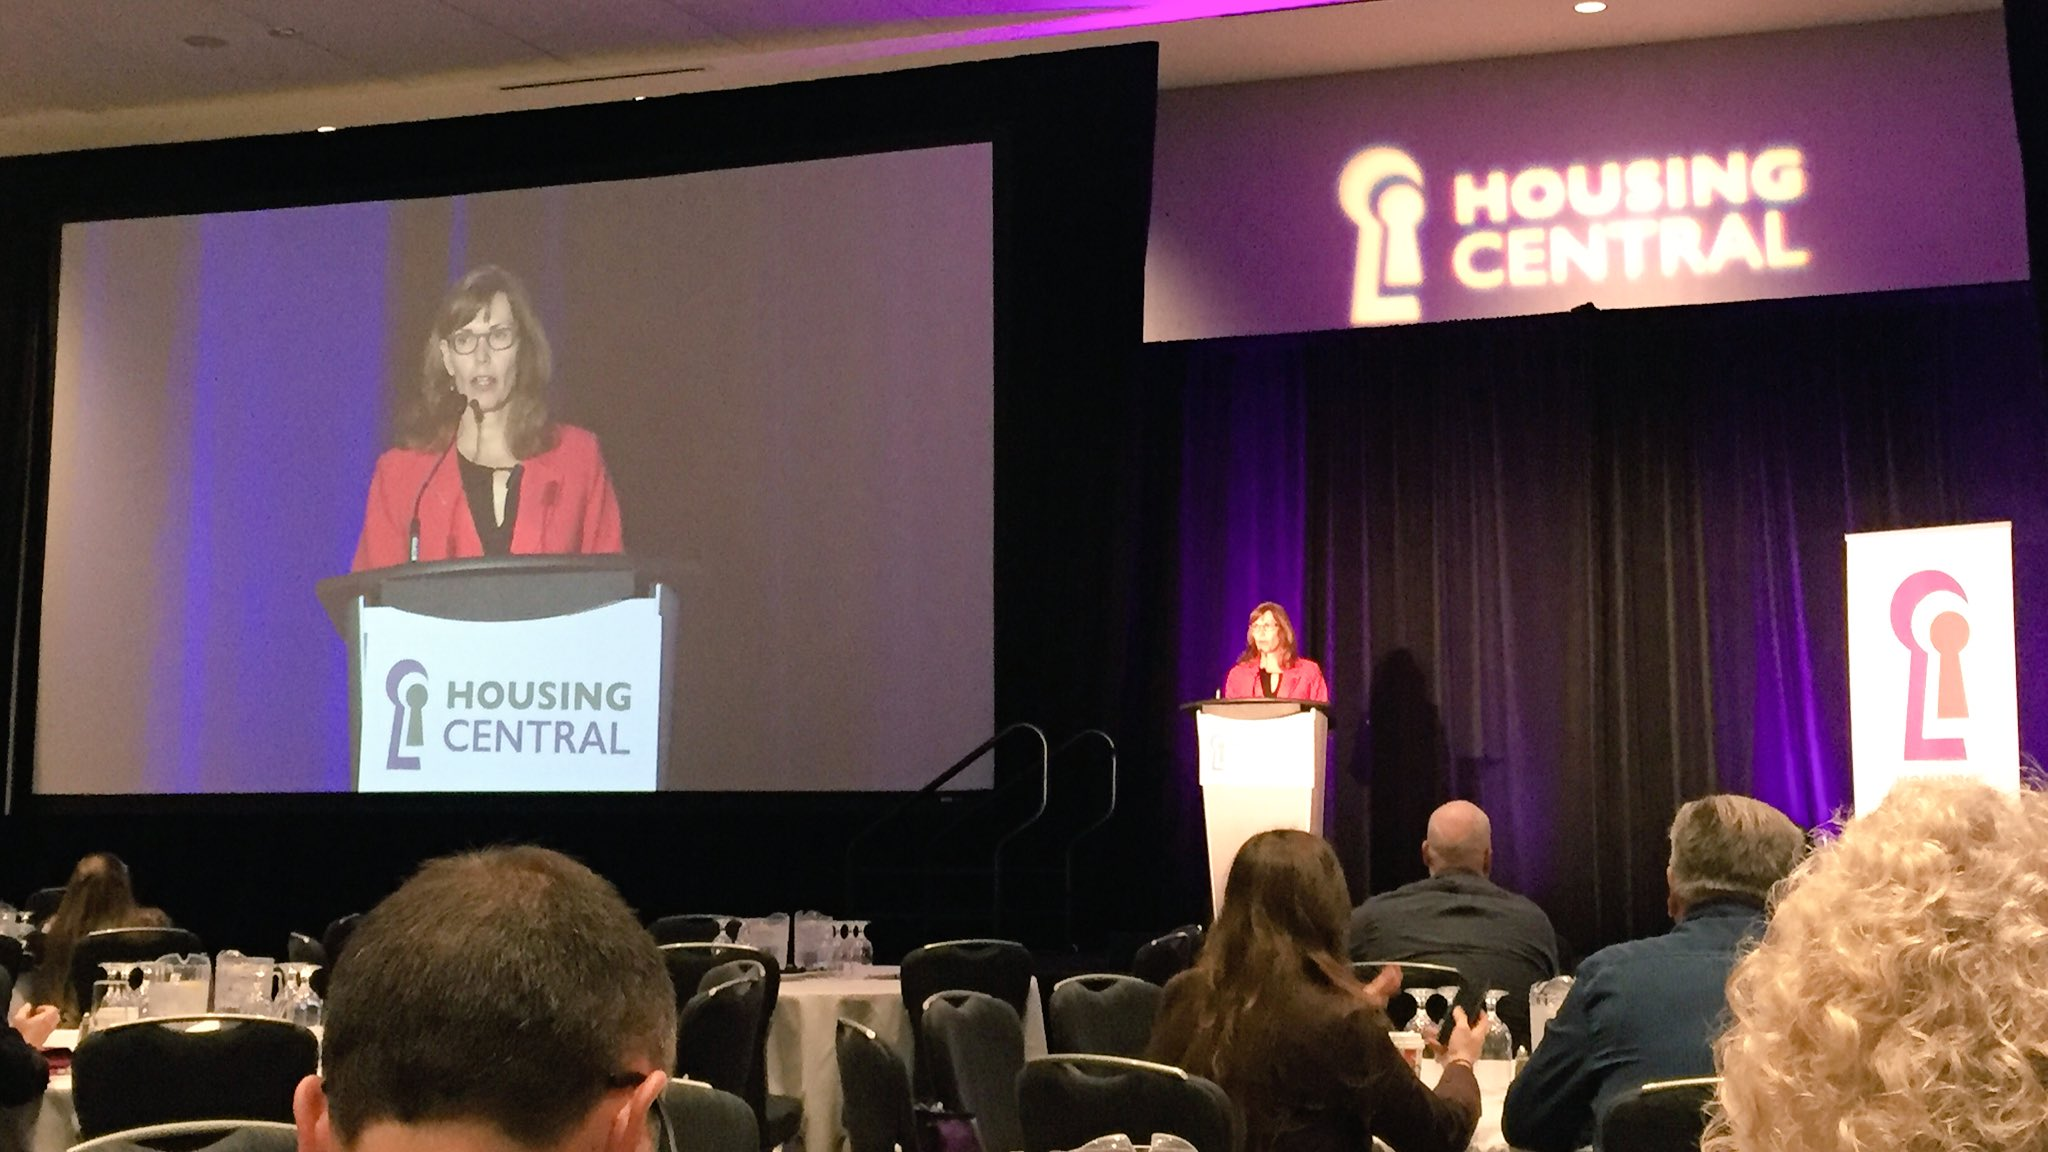 """Building the capacity of nonprofits is an essential thing for us to do"". - Kathleen Lewellyn-Thomas, @CityofVancouver #HousingCentral https://t.co/EptyMQgRjf"